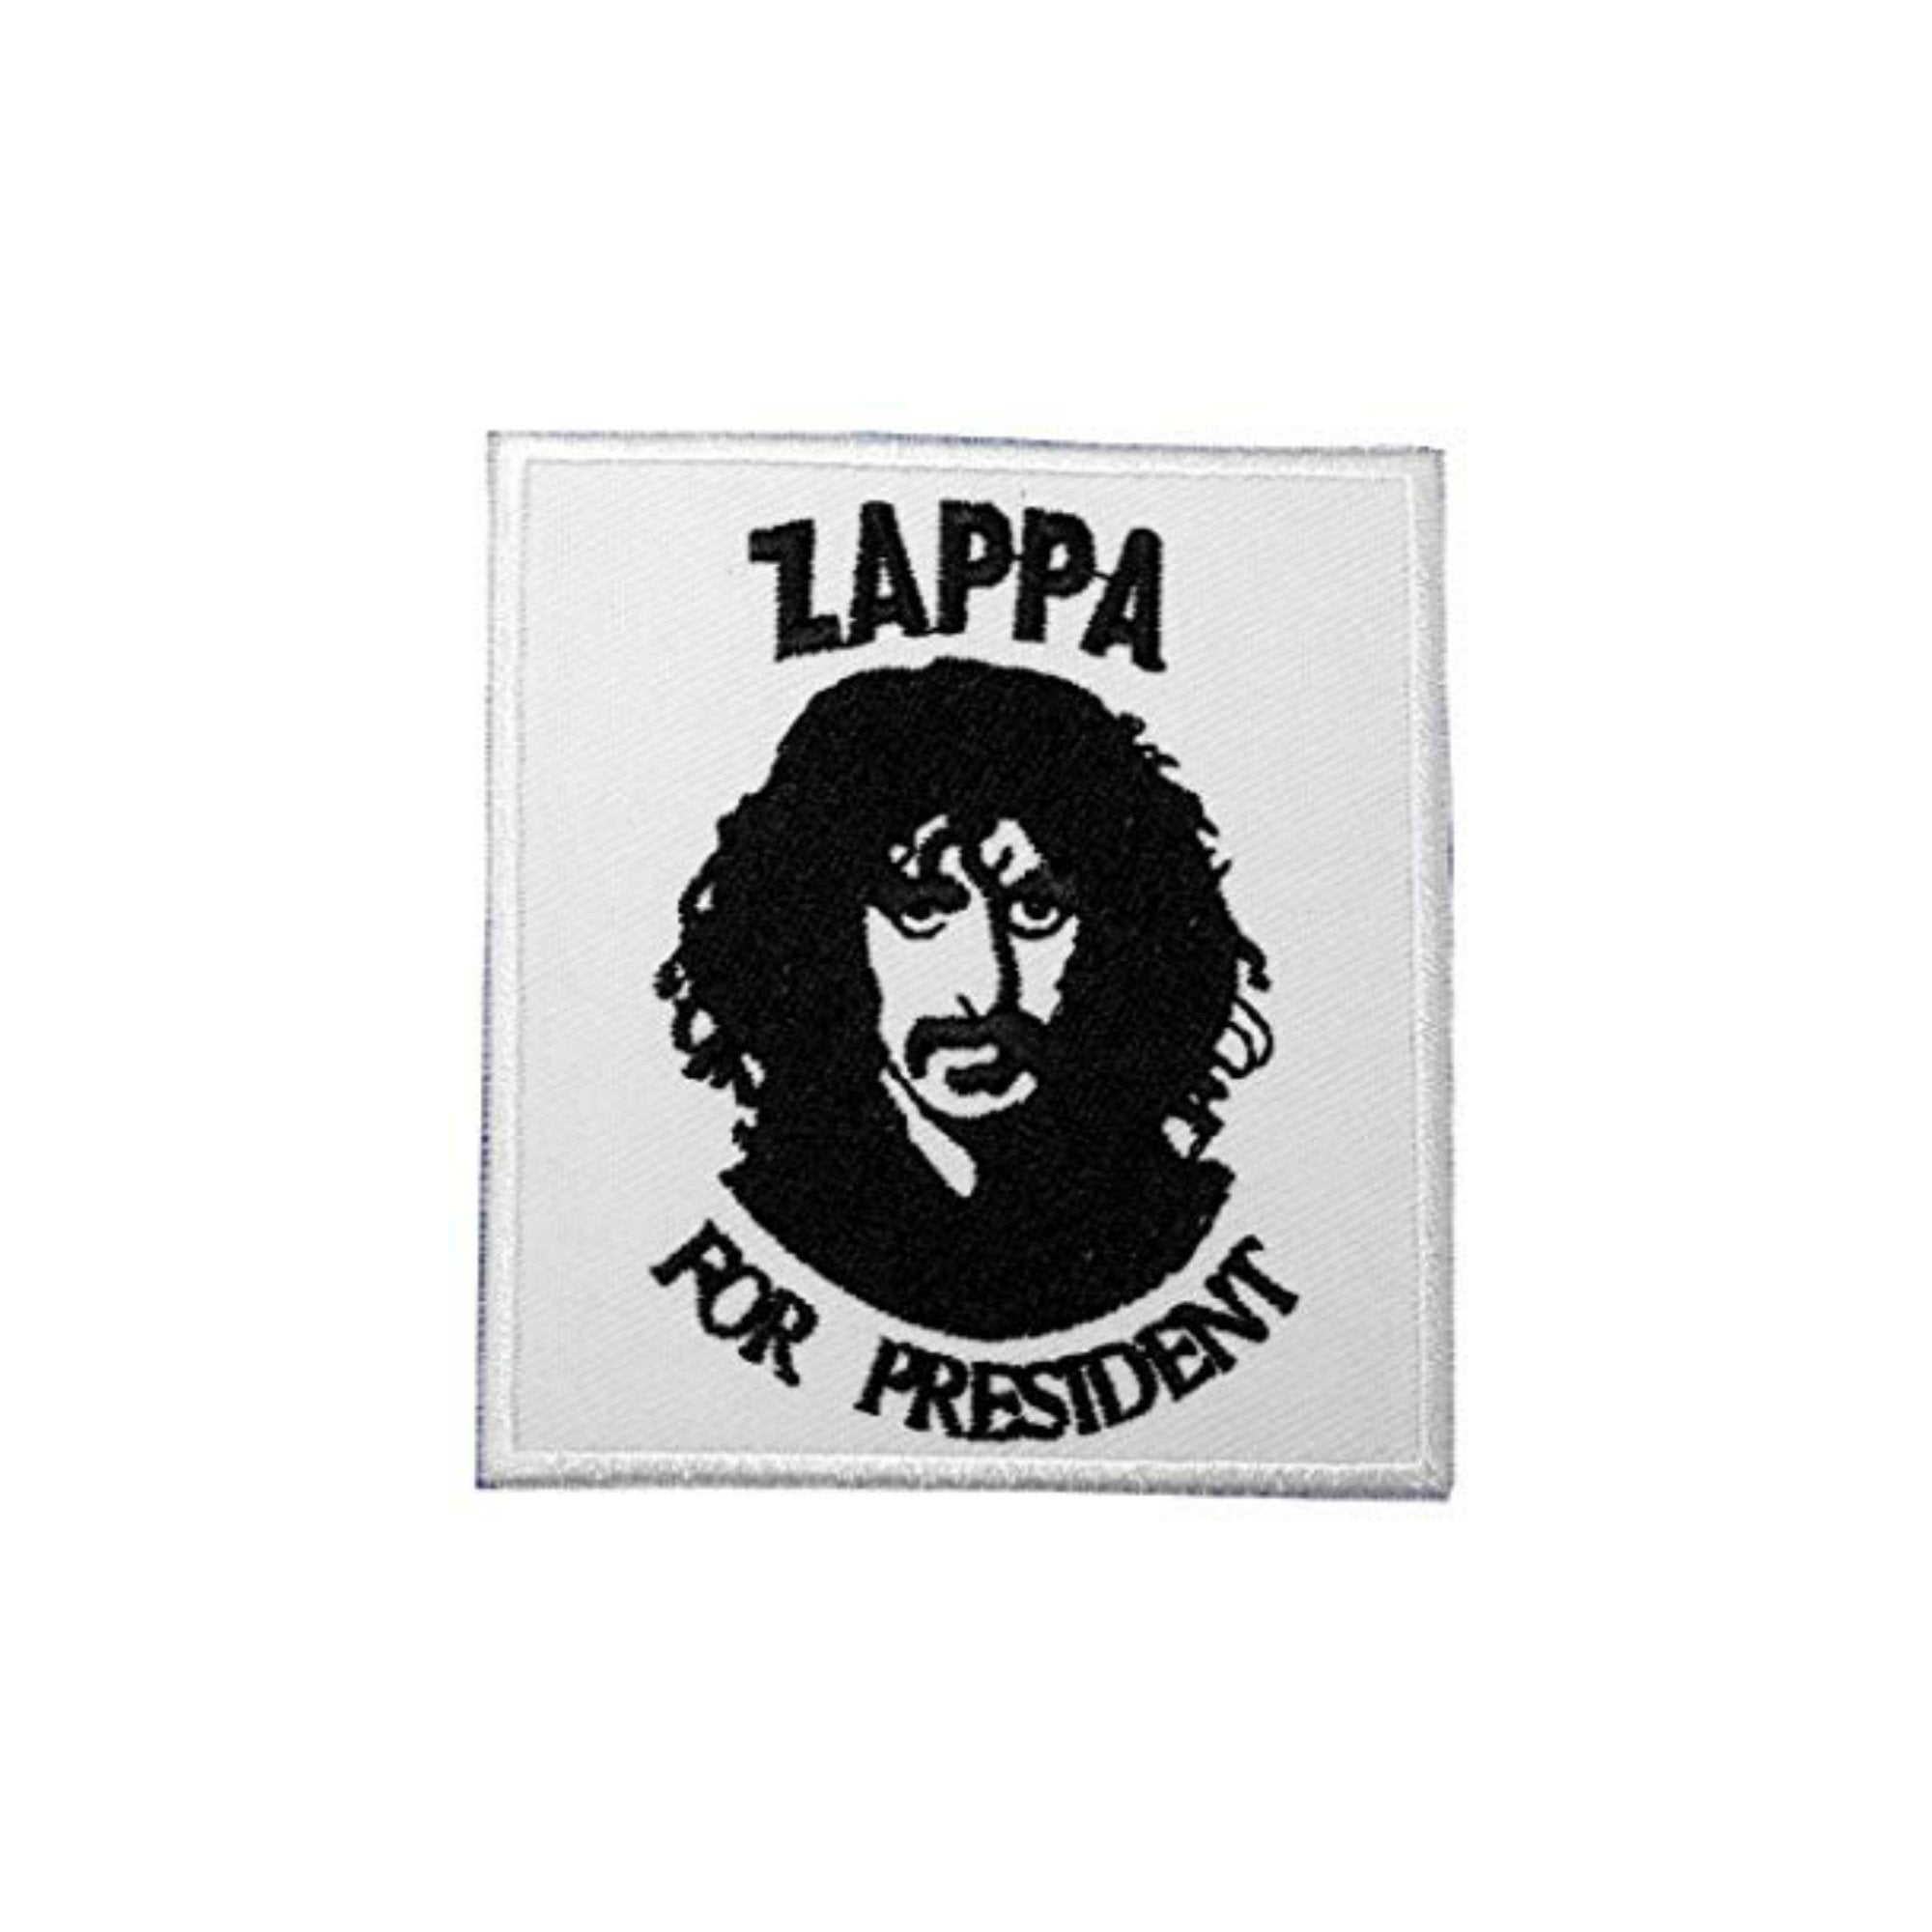 Zappa For President Iron On Patch - Minimum Mouse